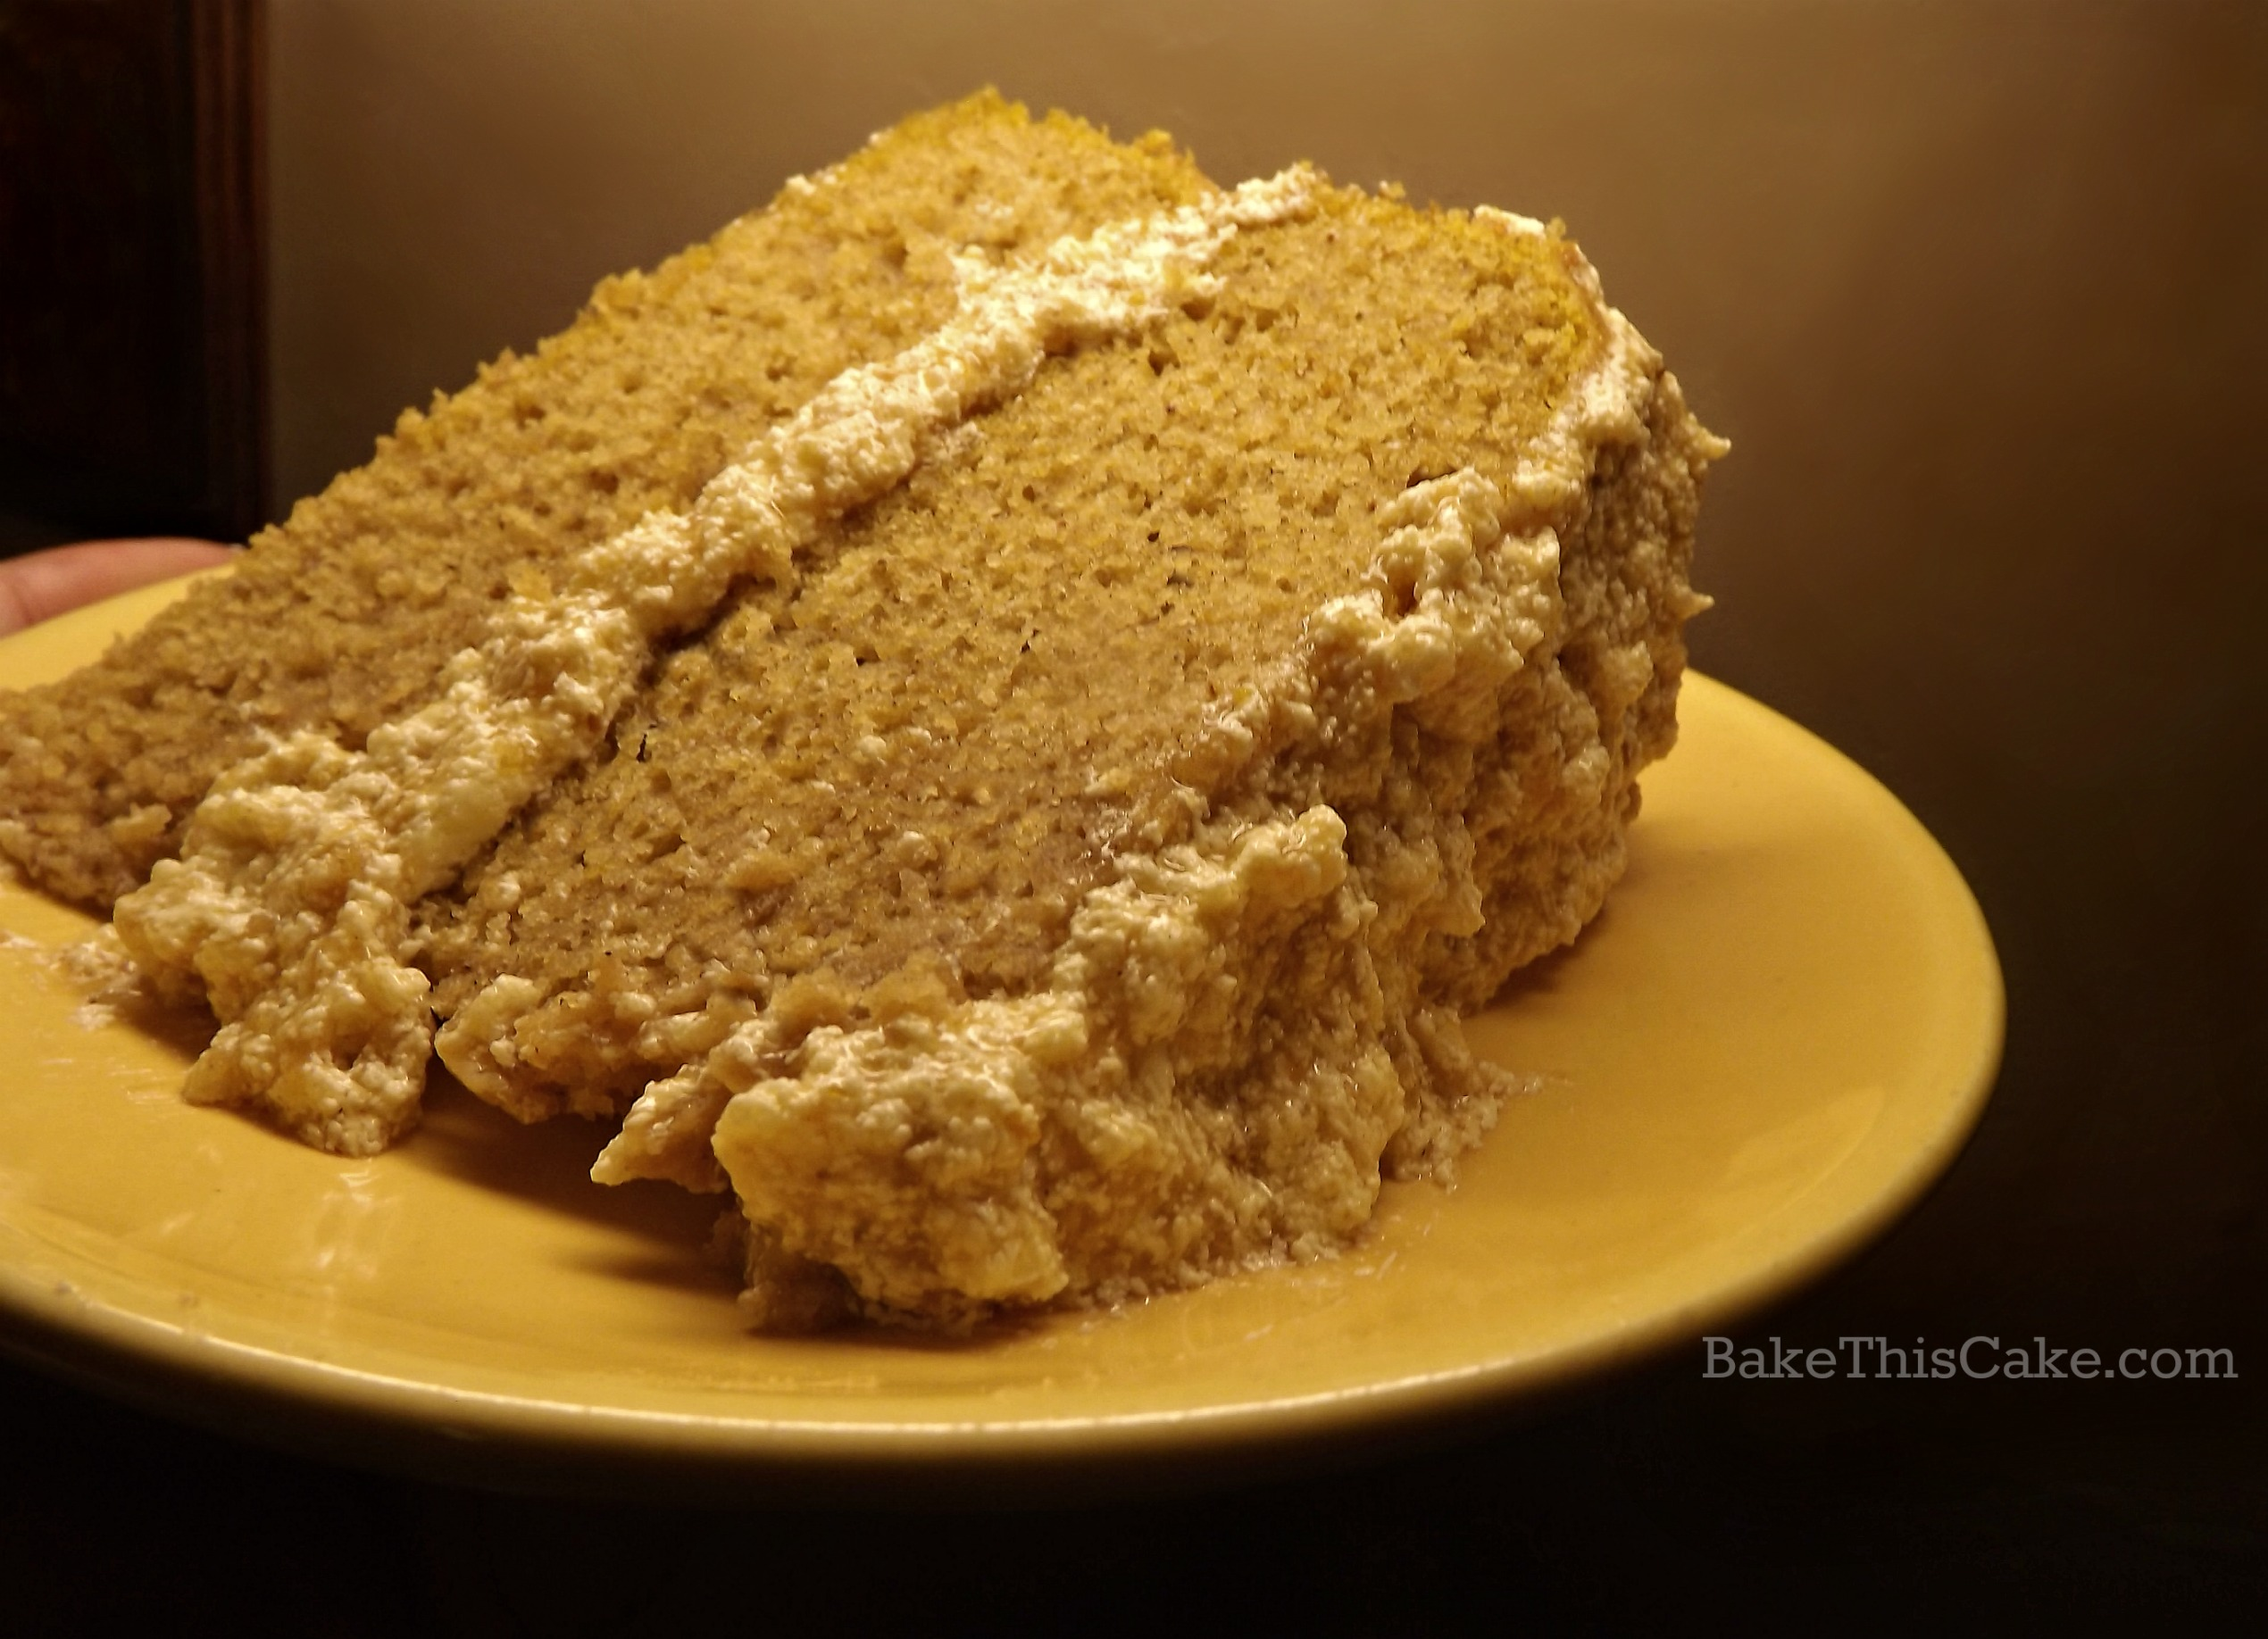 We Found Marion's History-Making Pumpkin Spice Cake